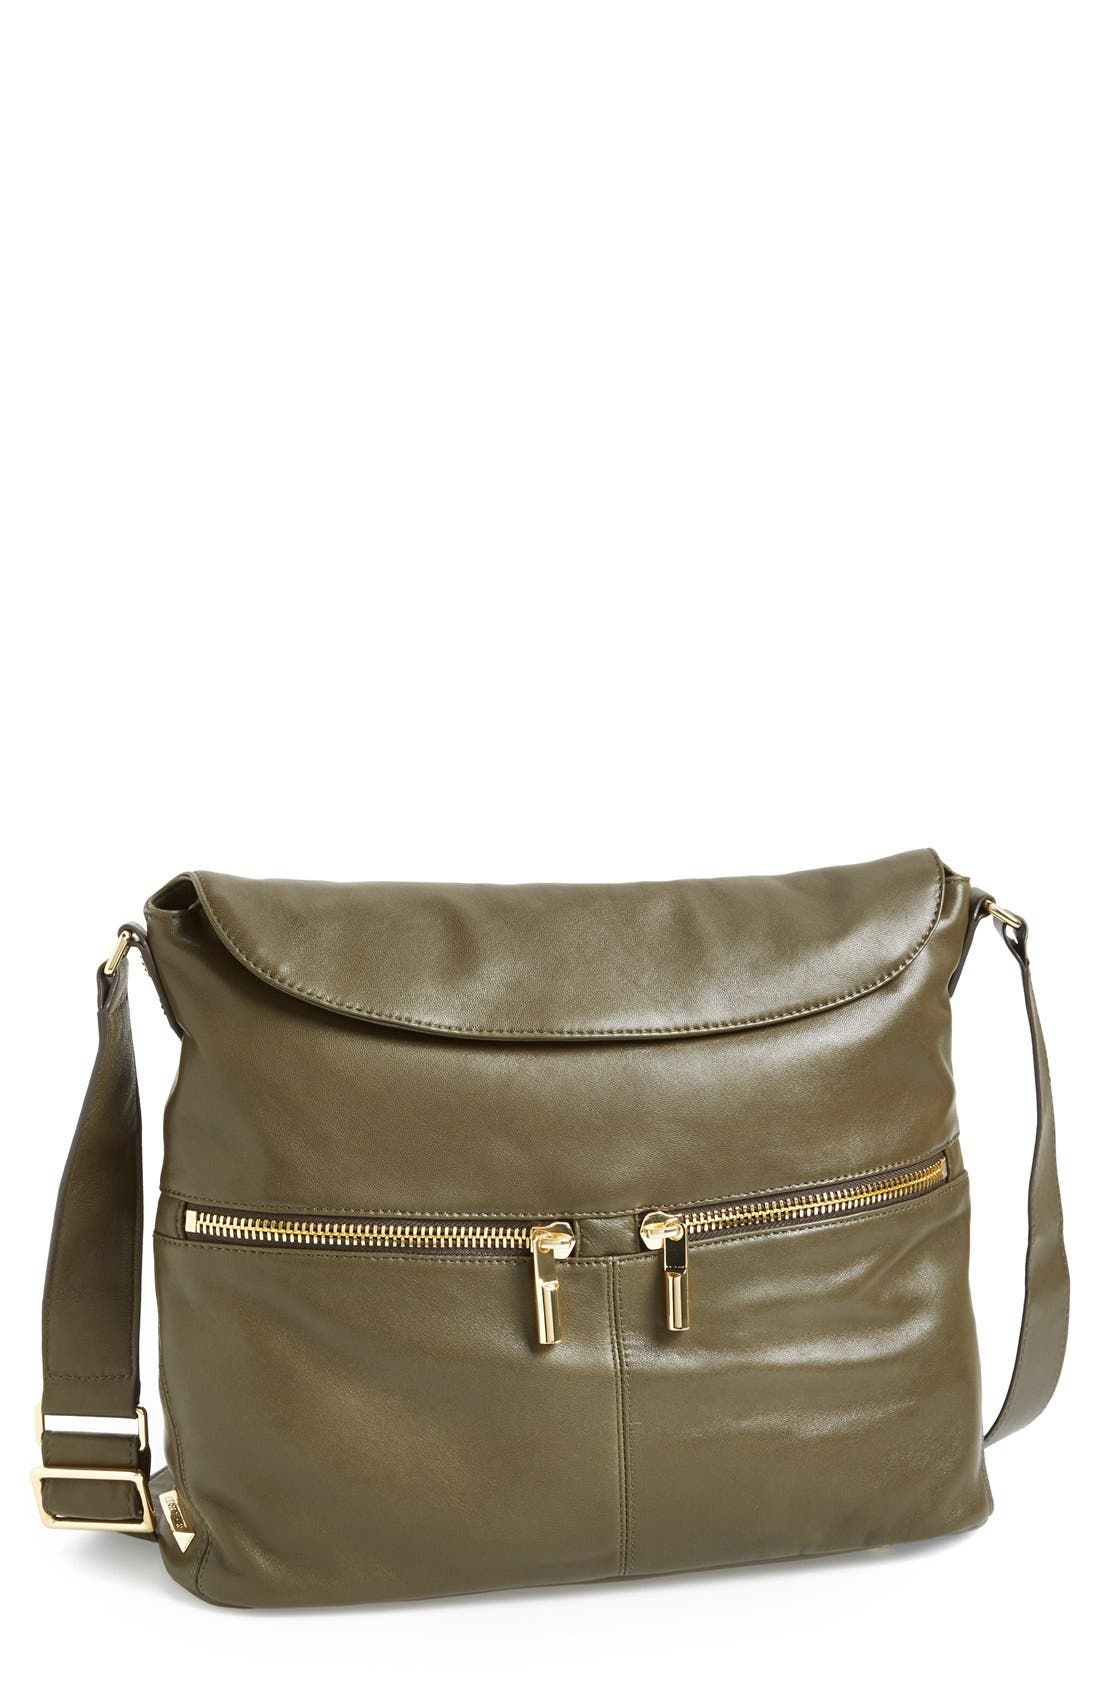 Alternate Image 1 Selected - Elizabeth and James 'James' Convertible Leather Hobo